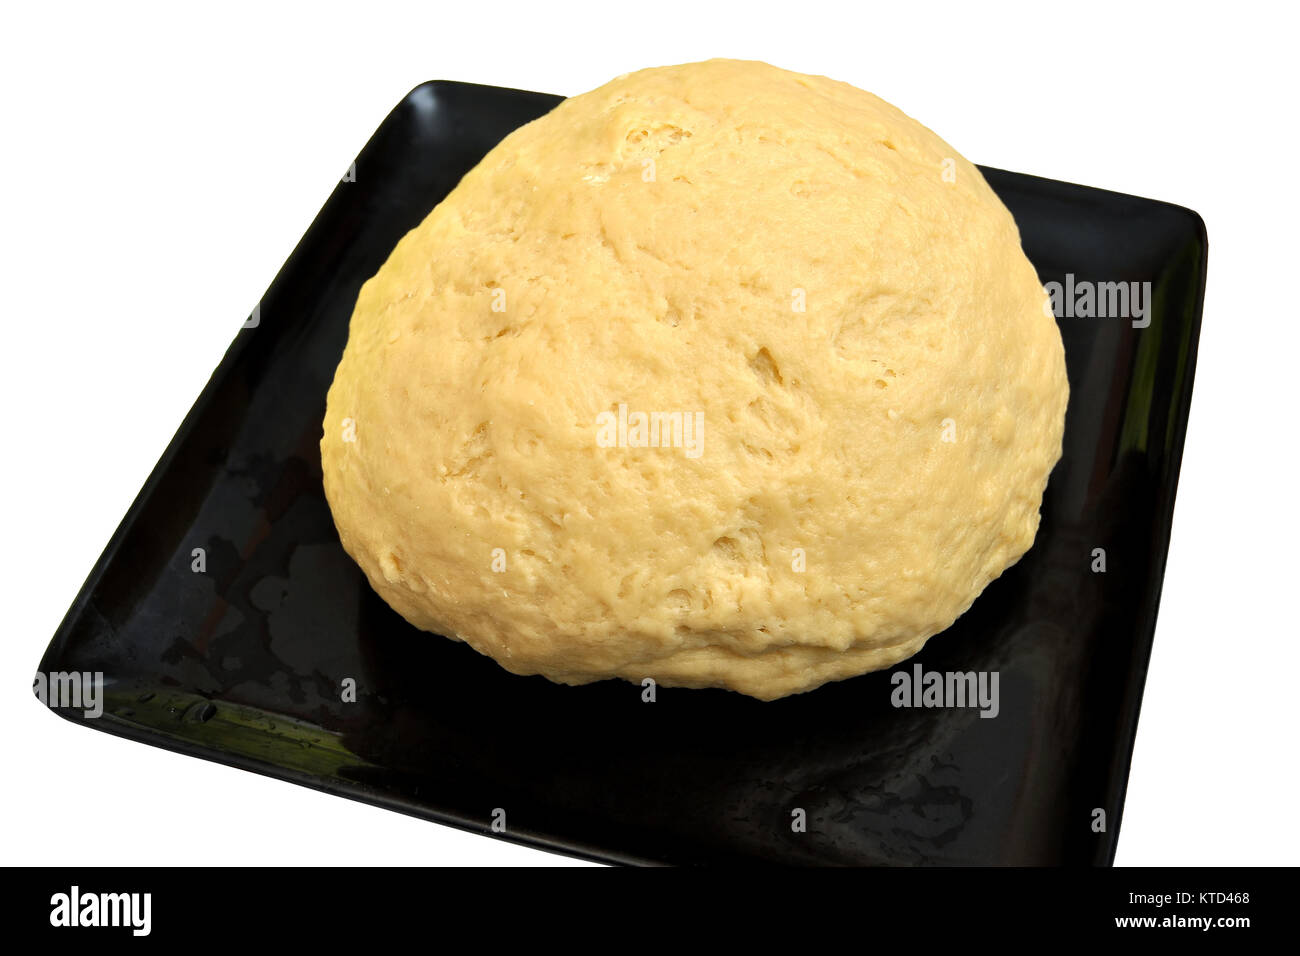 Isolated image of risen yeast dough for bread or pizza in a black baking tray - Stock Image